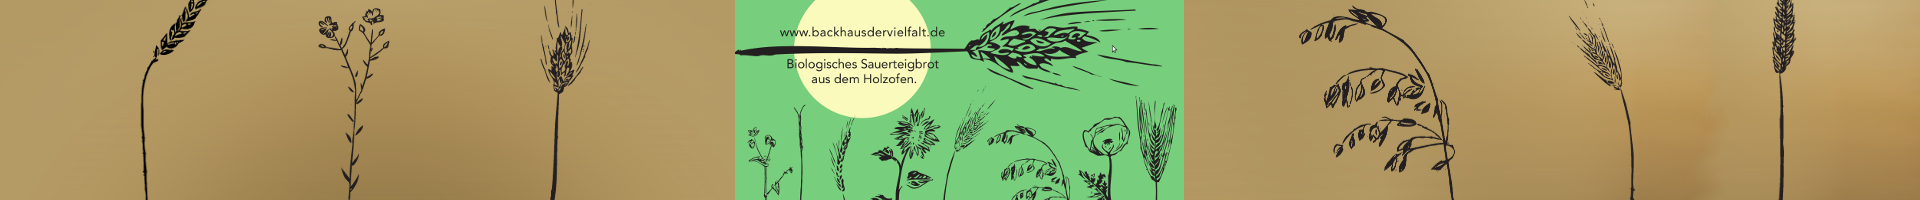 Unser Holzofenbrot